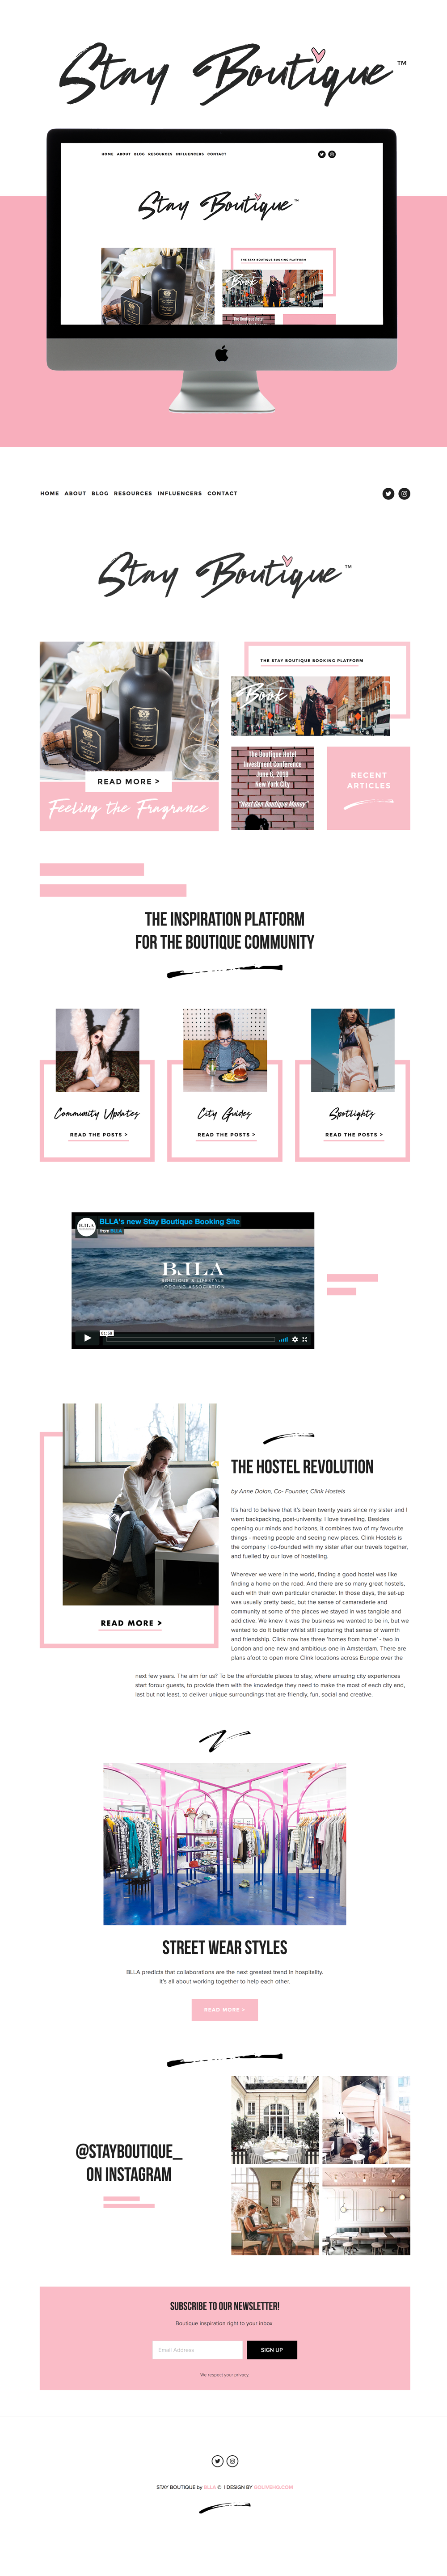 Boutique+website+inspiration+_+Go+live+Hq.png